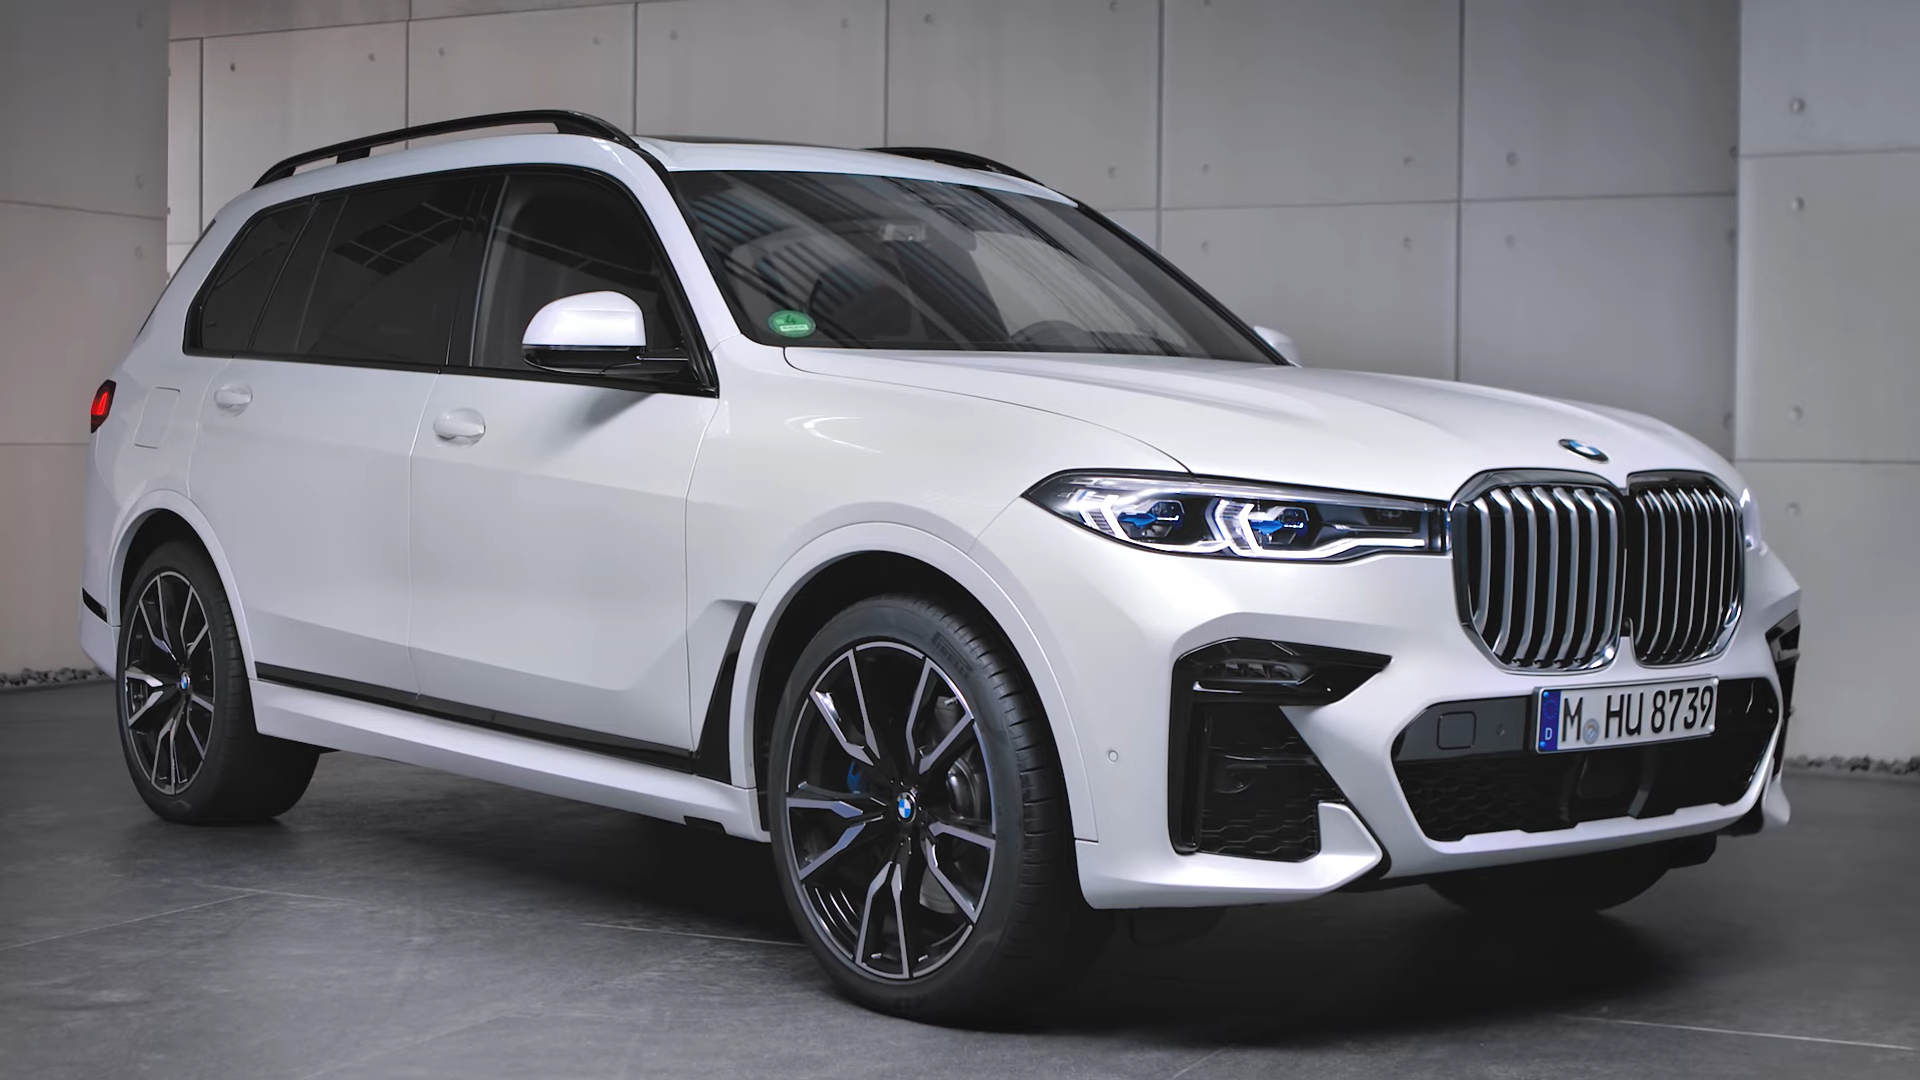 BMW X7 M Sport in Alpine White G07